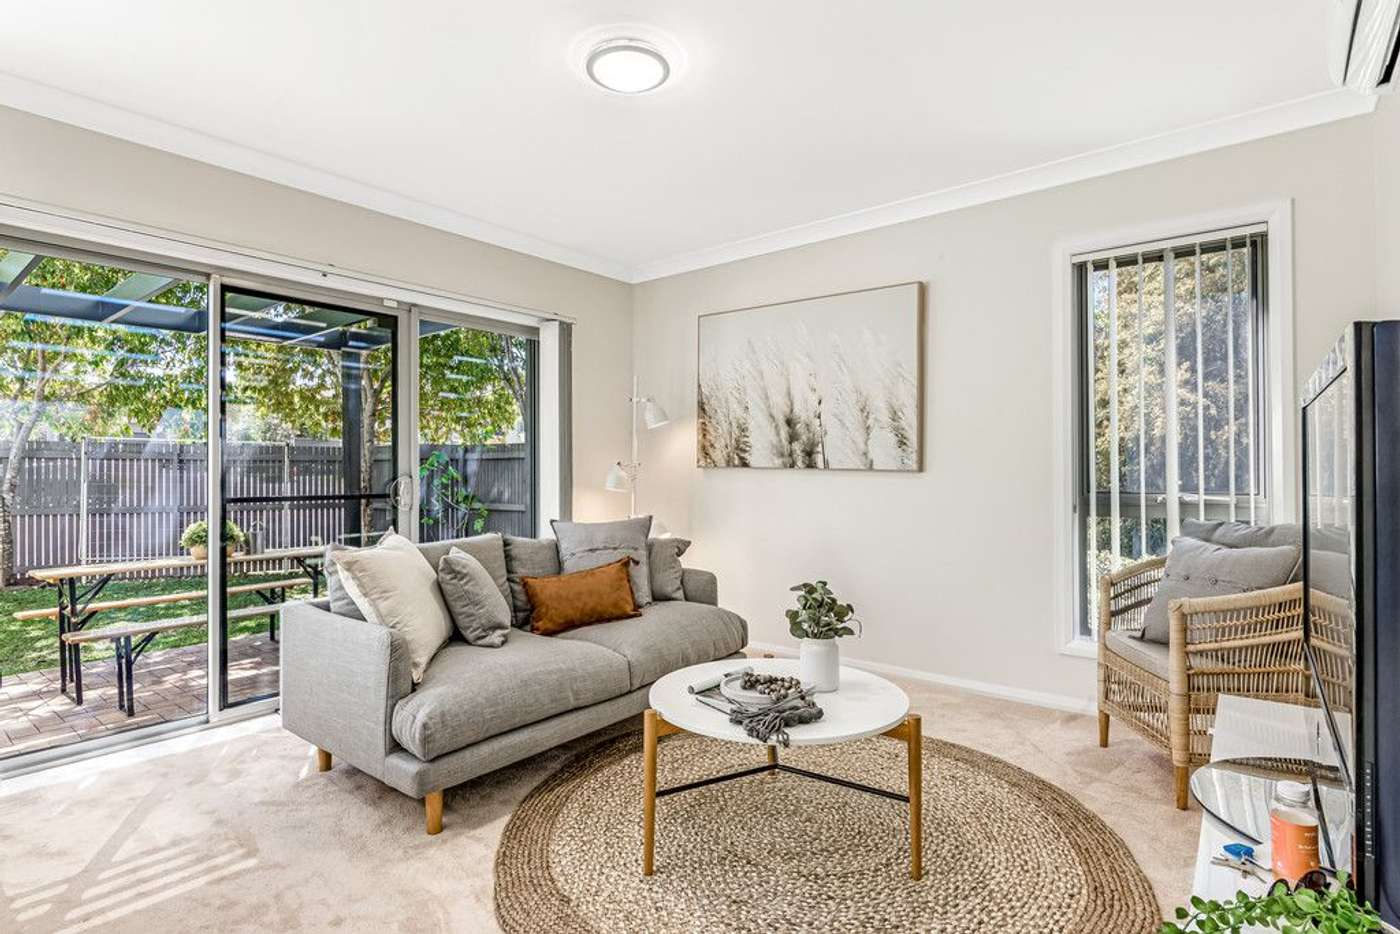 Sixth view of Homely house listing, 78 Stanhope Parkway, Stanhope Gardens NSW 2768